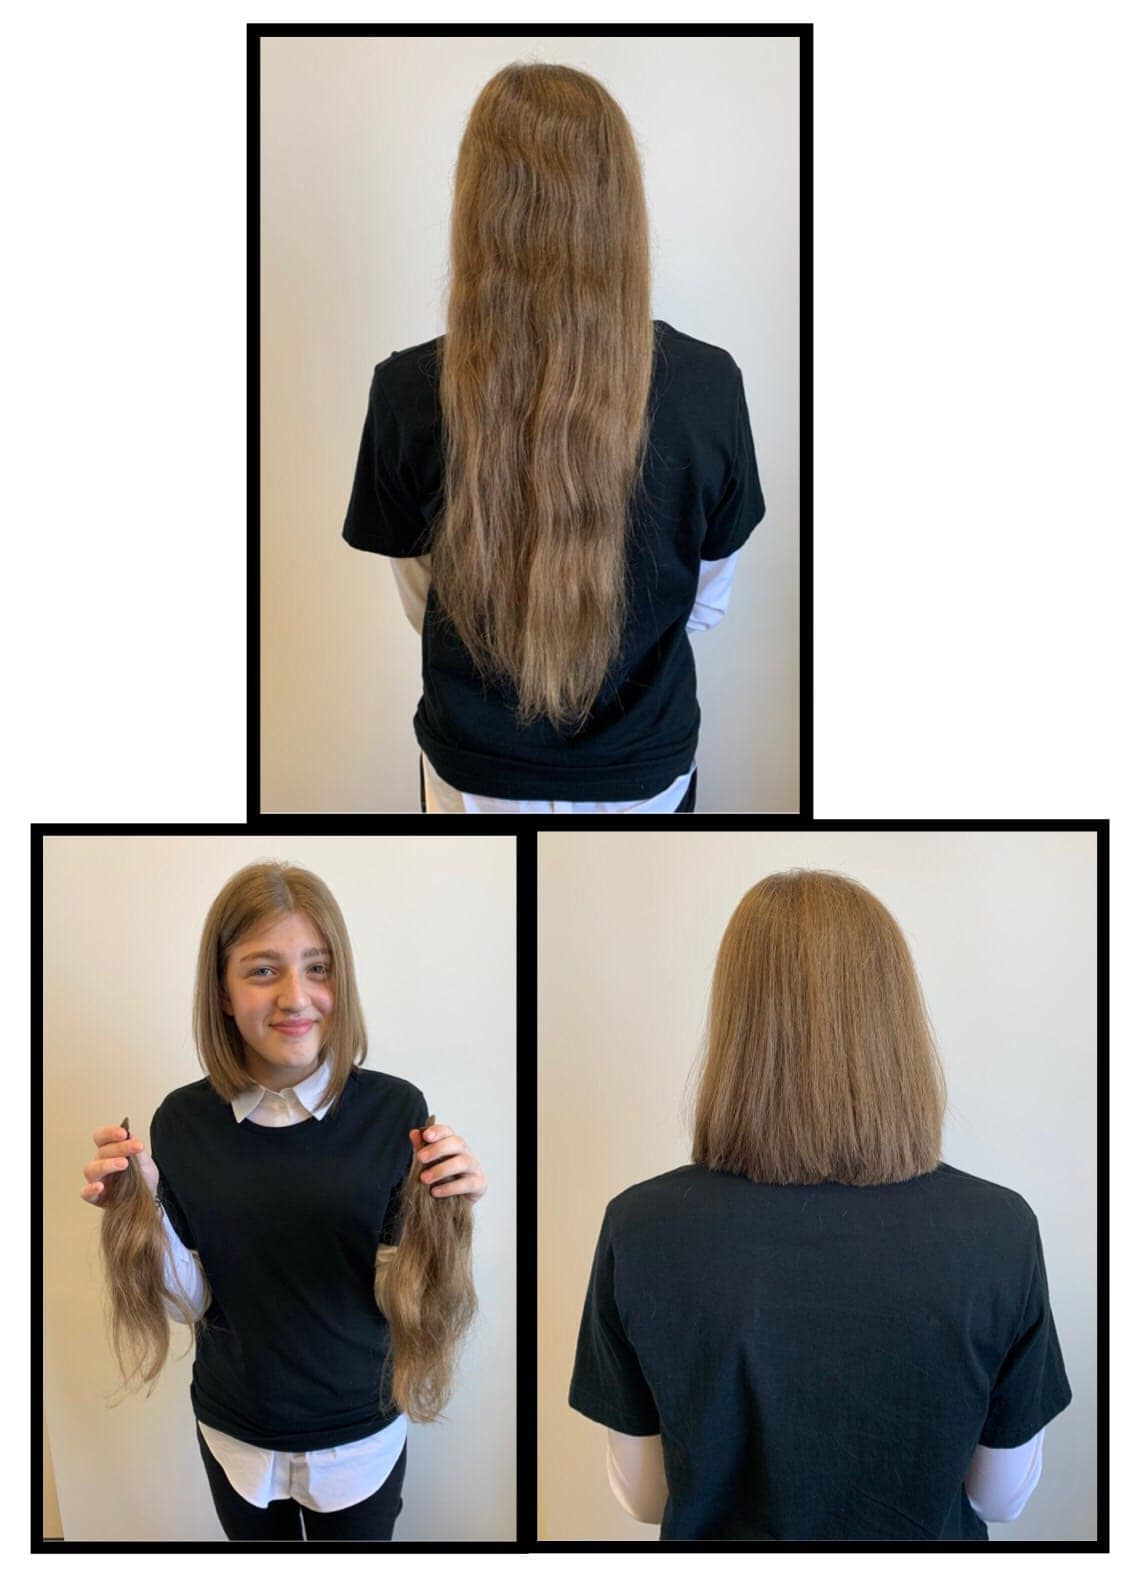 Donating Hair For Wig